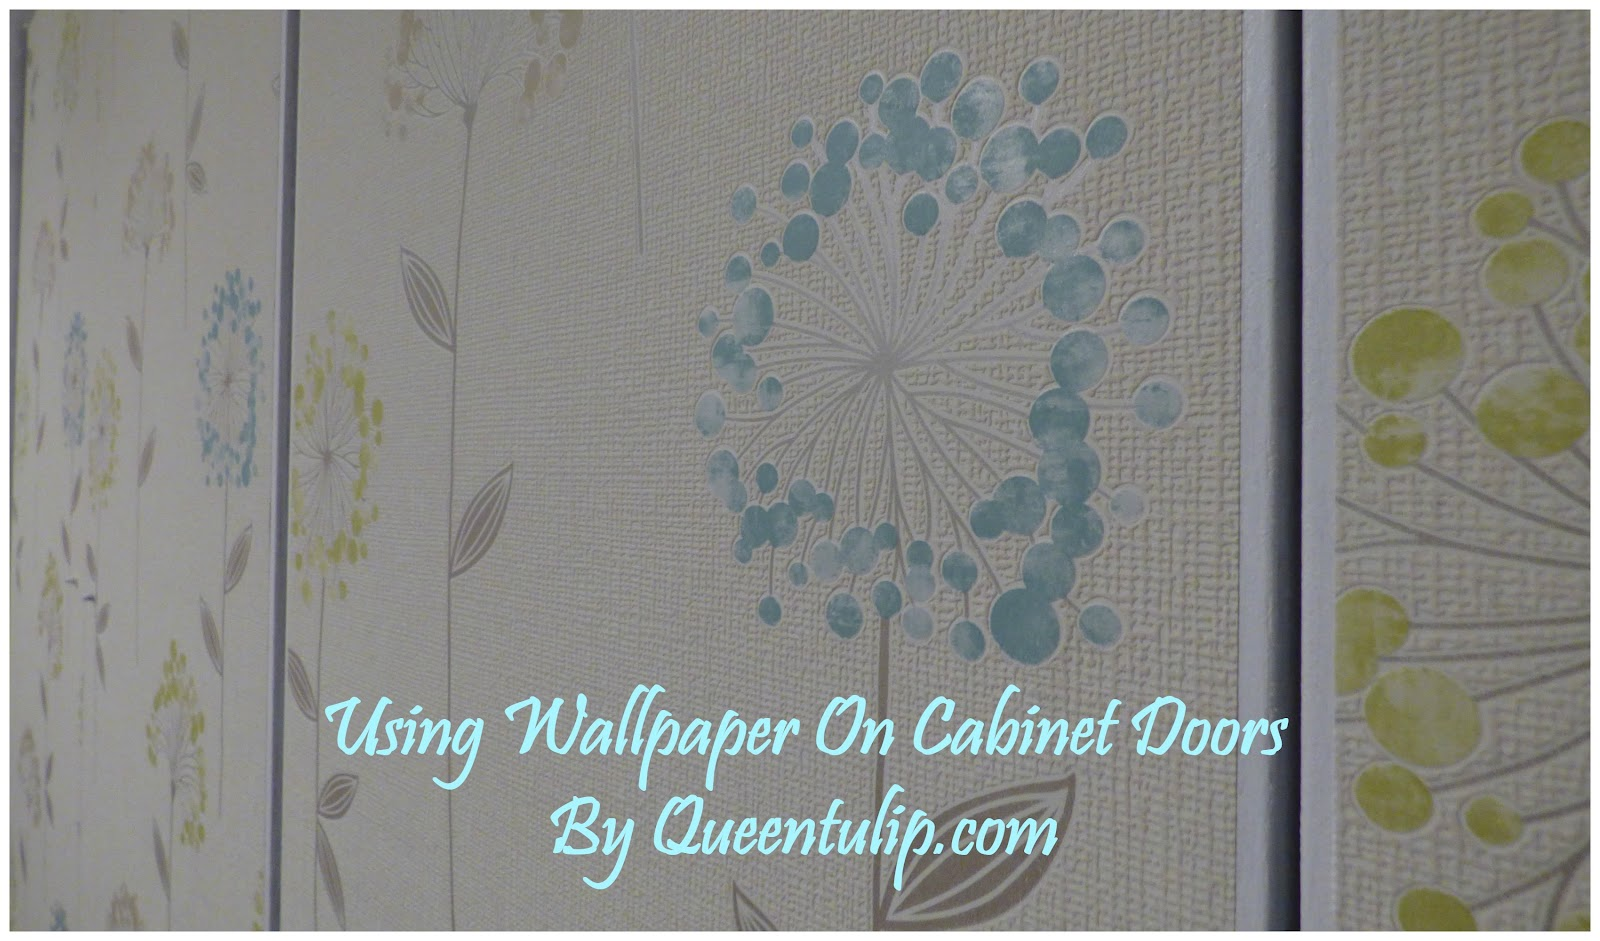 DIY Using Wallpaper On Cabinet Doors, My Latest Project On The Block. : )  Instead Of Playing With Paint Colours, I Thought Of Experimenting A  Wallpaper I ...